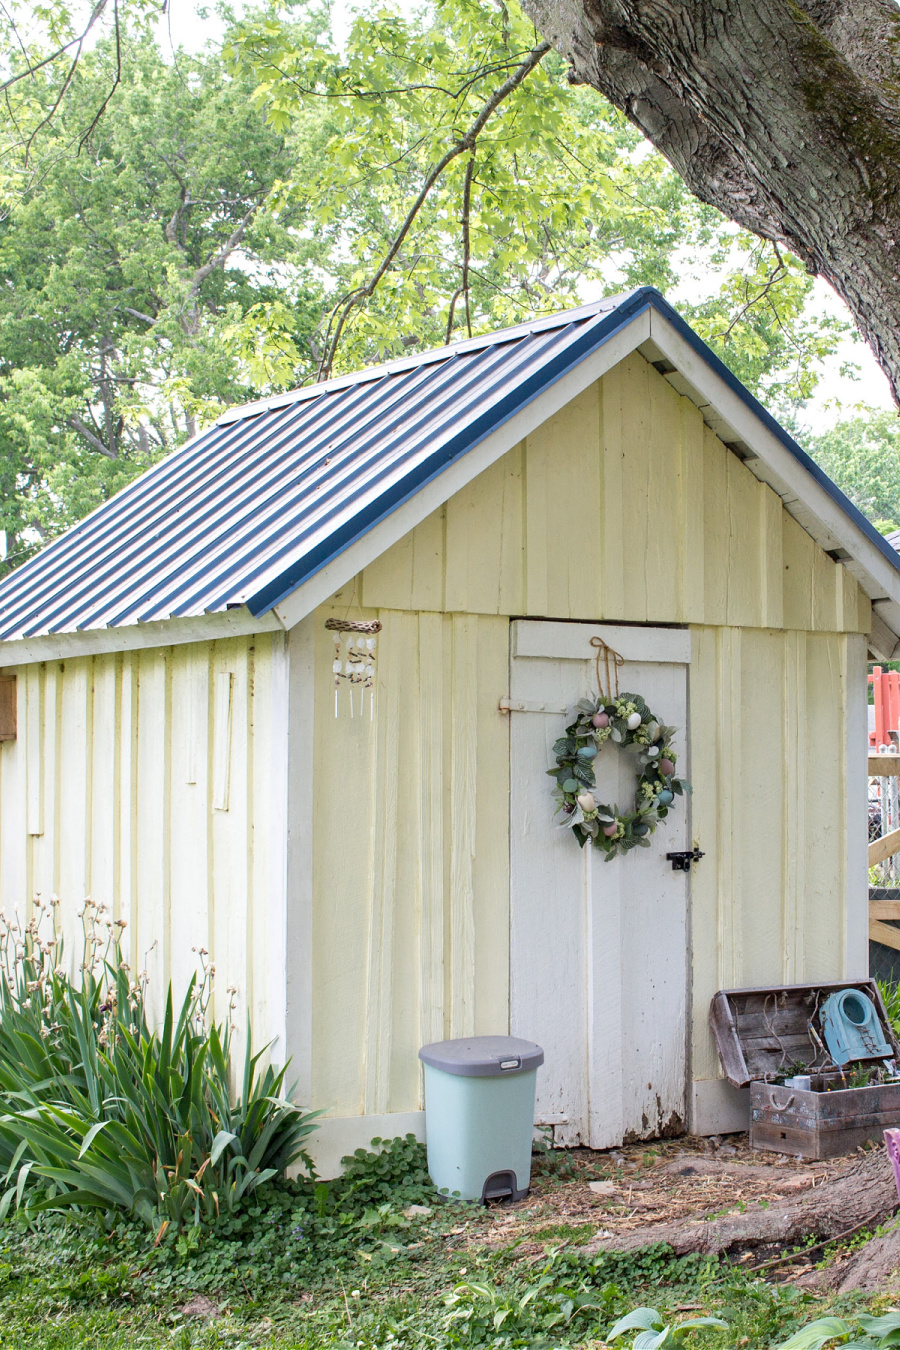 A yellow garden shed with wood door converted into a chicken coop.